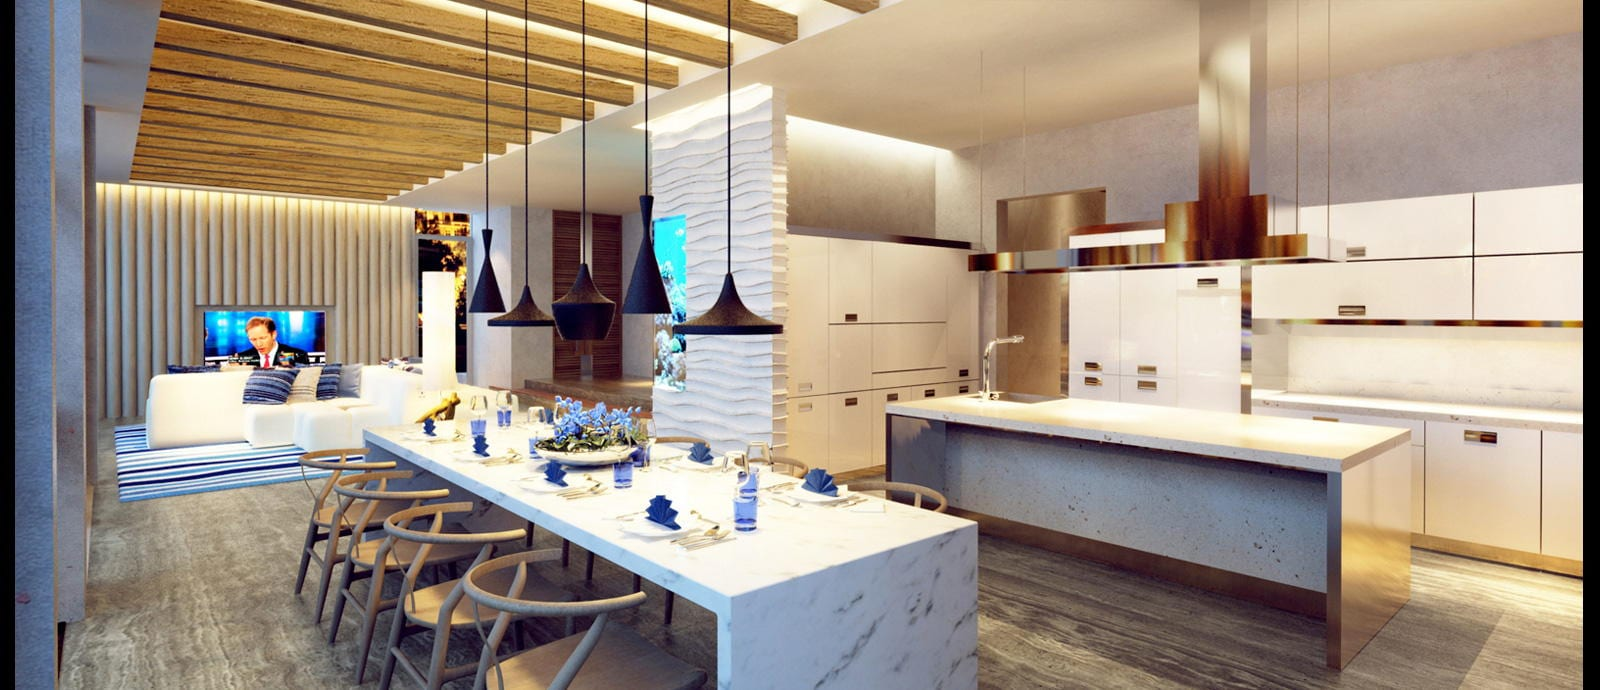 Top Interior Design Company Singapore | Best Interior Design